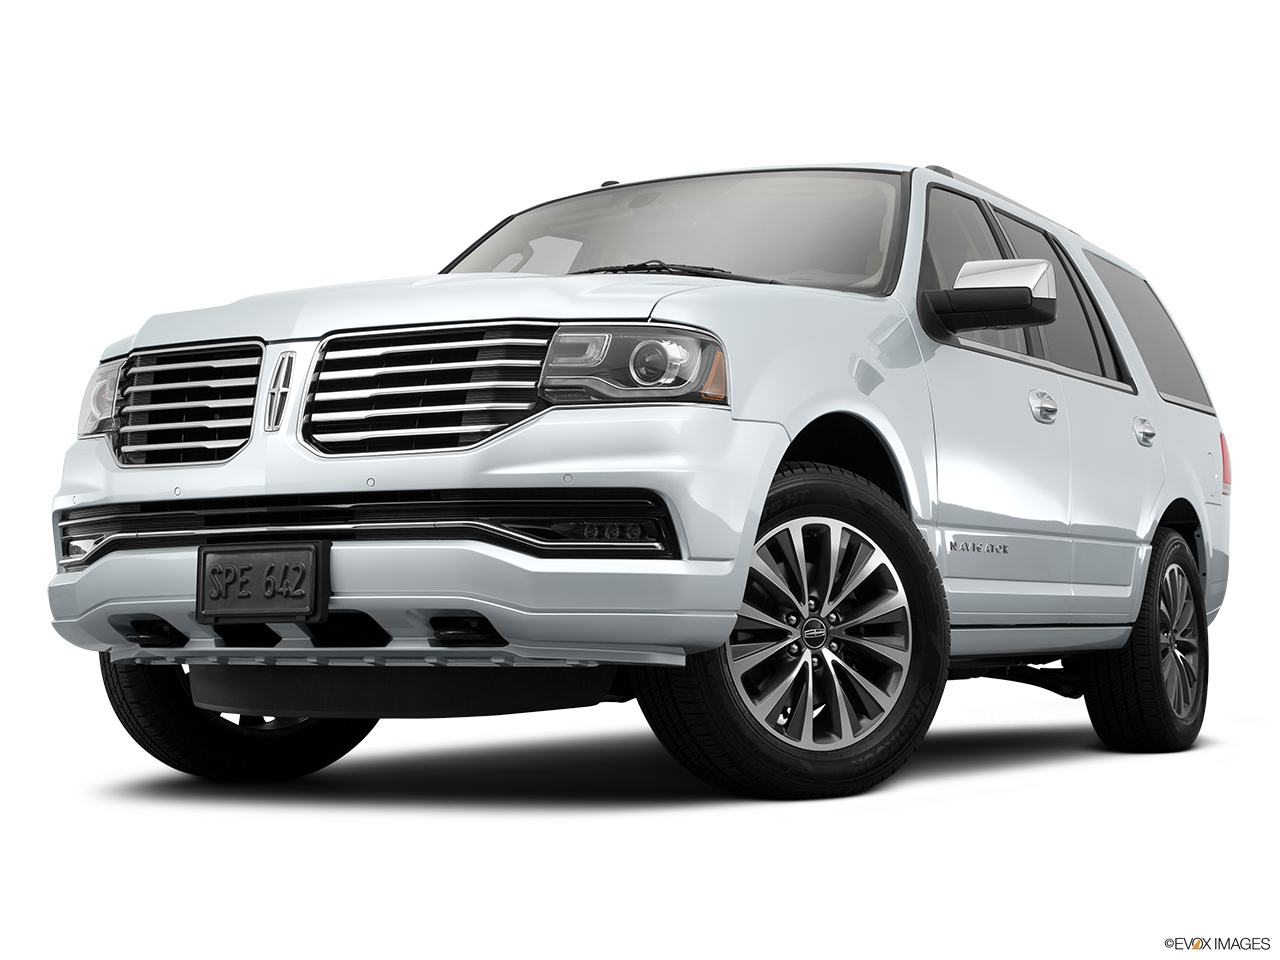 2015 Lincoln Navigator Base Front angle view, low wide perspective.